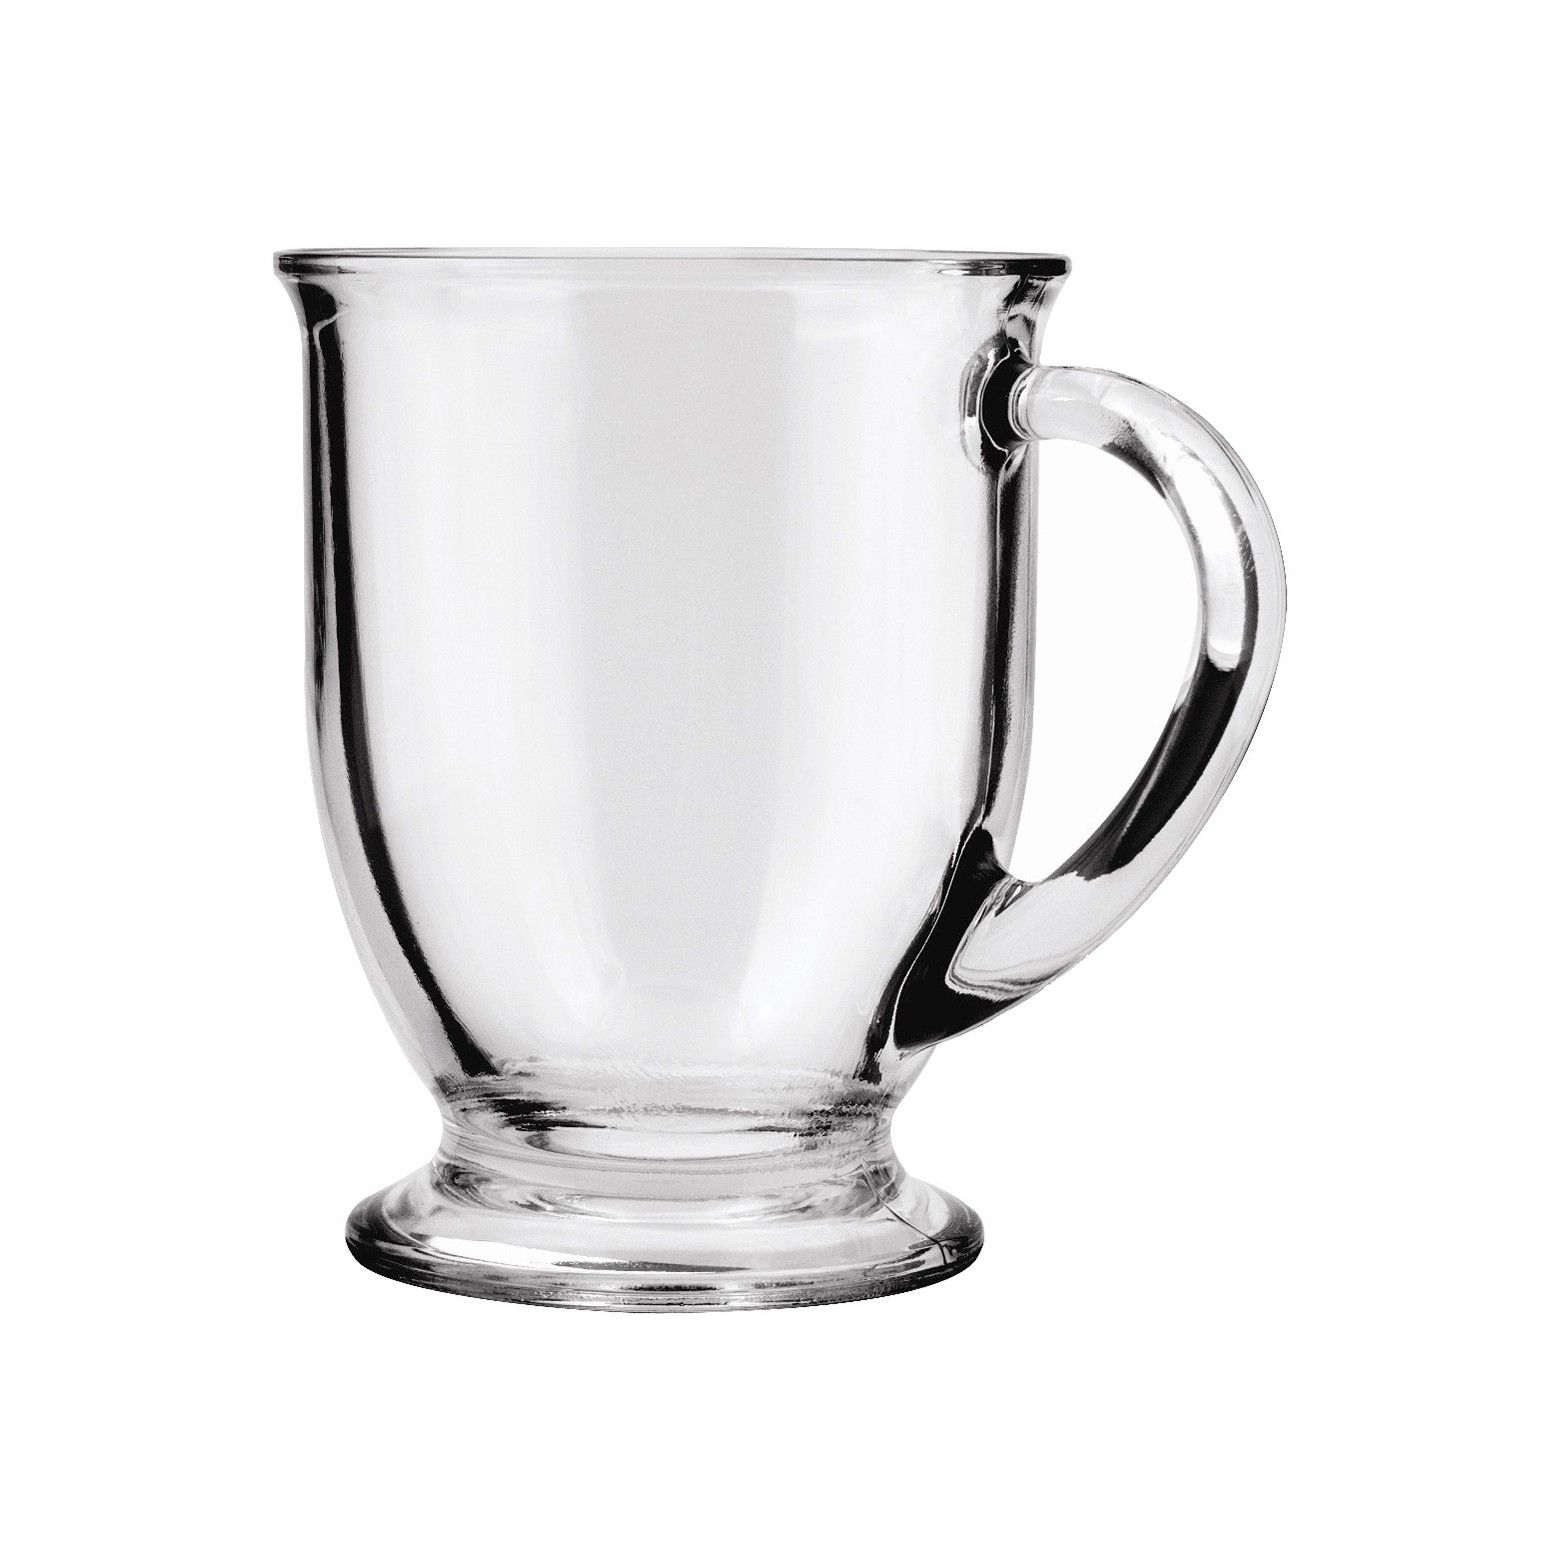 Warm up with this Anchor Hocking 16 oz. handled glass cafe